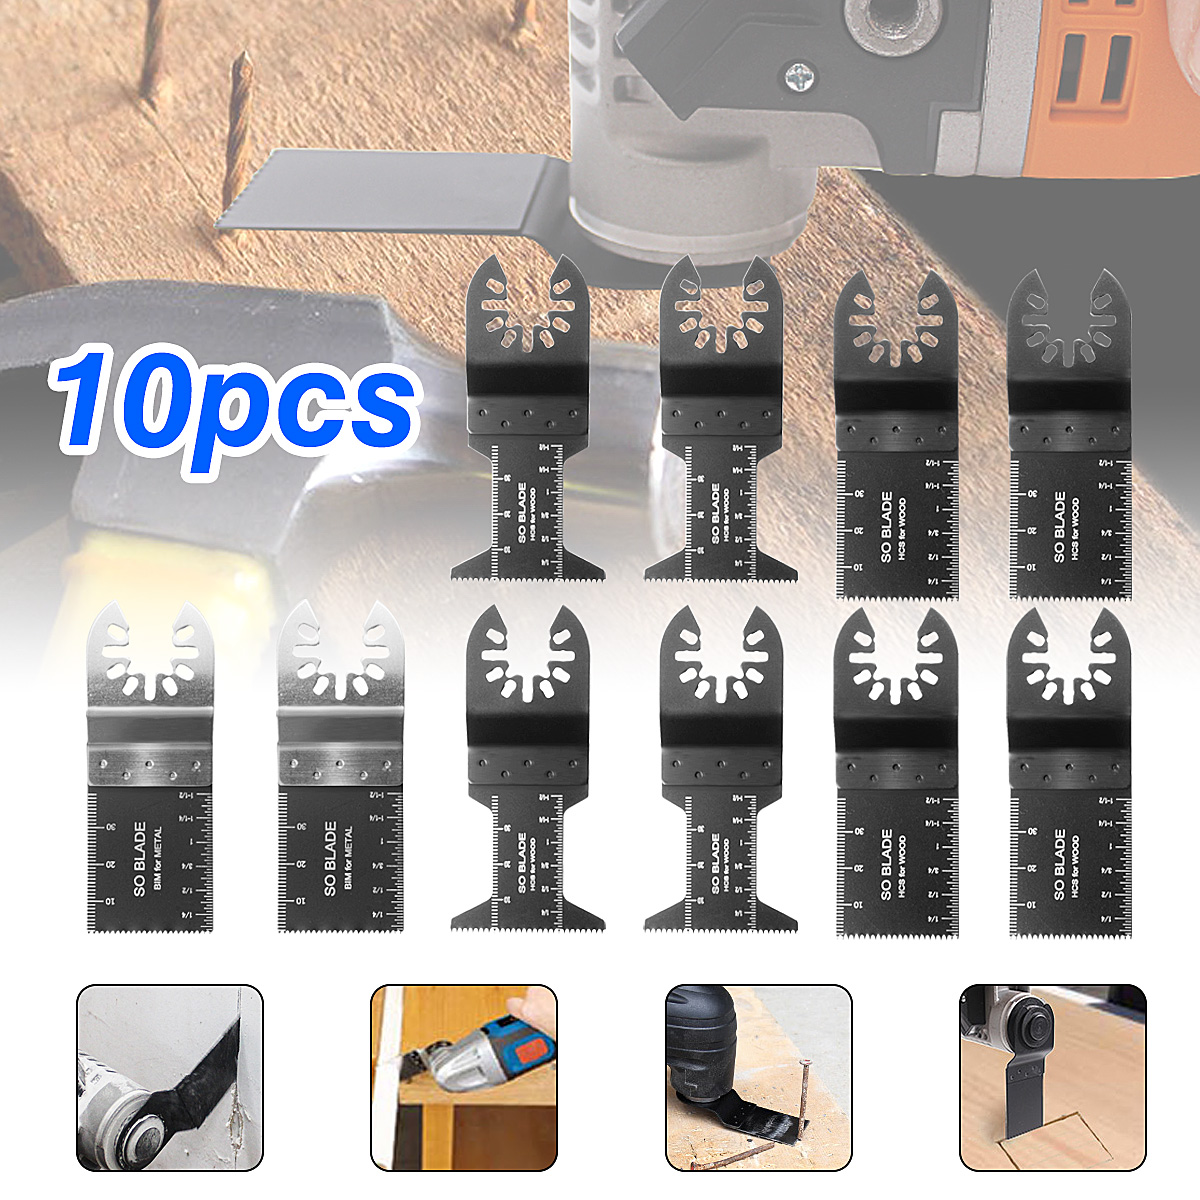 10Pcs Multitool Saw Blade Oscillating Blade Multi Tool Saw For Renovator For Bosch,Fein Multimaster Wood Cutting Accessories Kit10Pcs Multitool Saw Blade Oscillating Blade Multi Tool Saw For Renovator For Bosch,Fein Multimaster Wood Cutting Accessories Kit